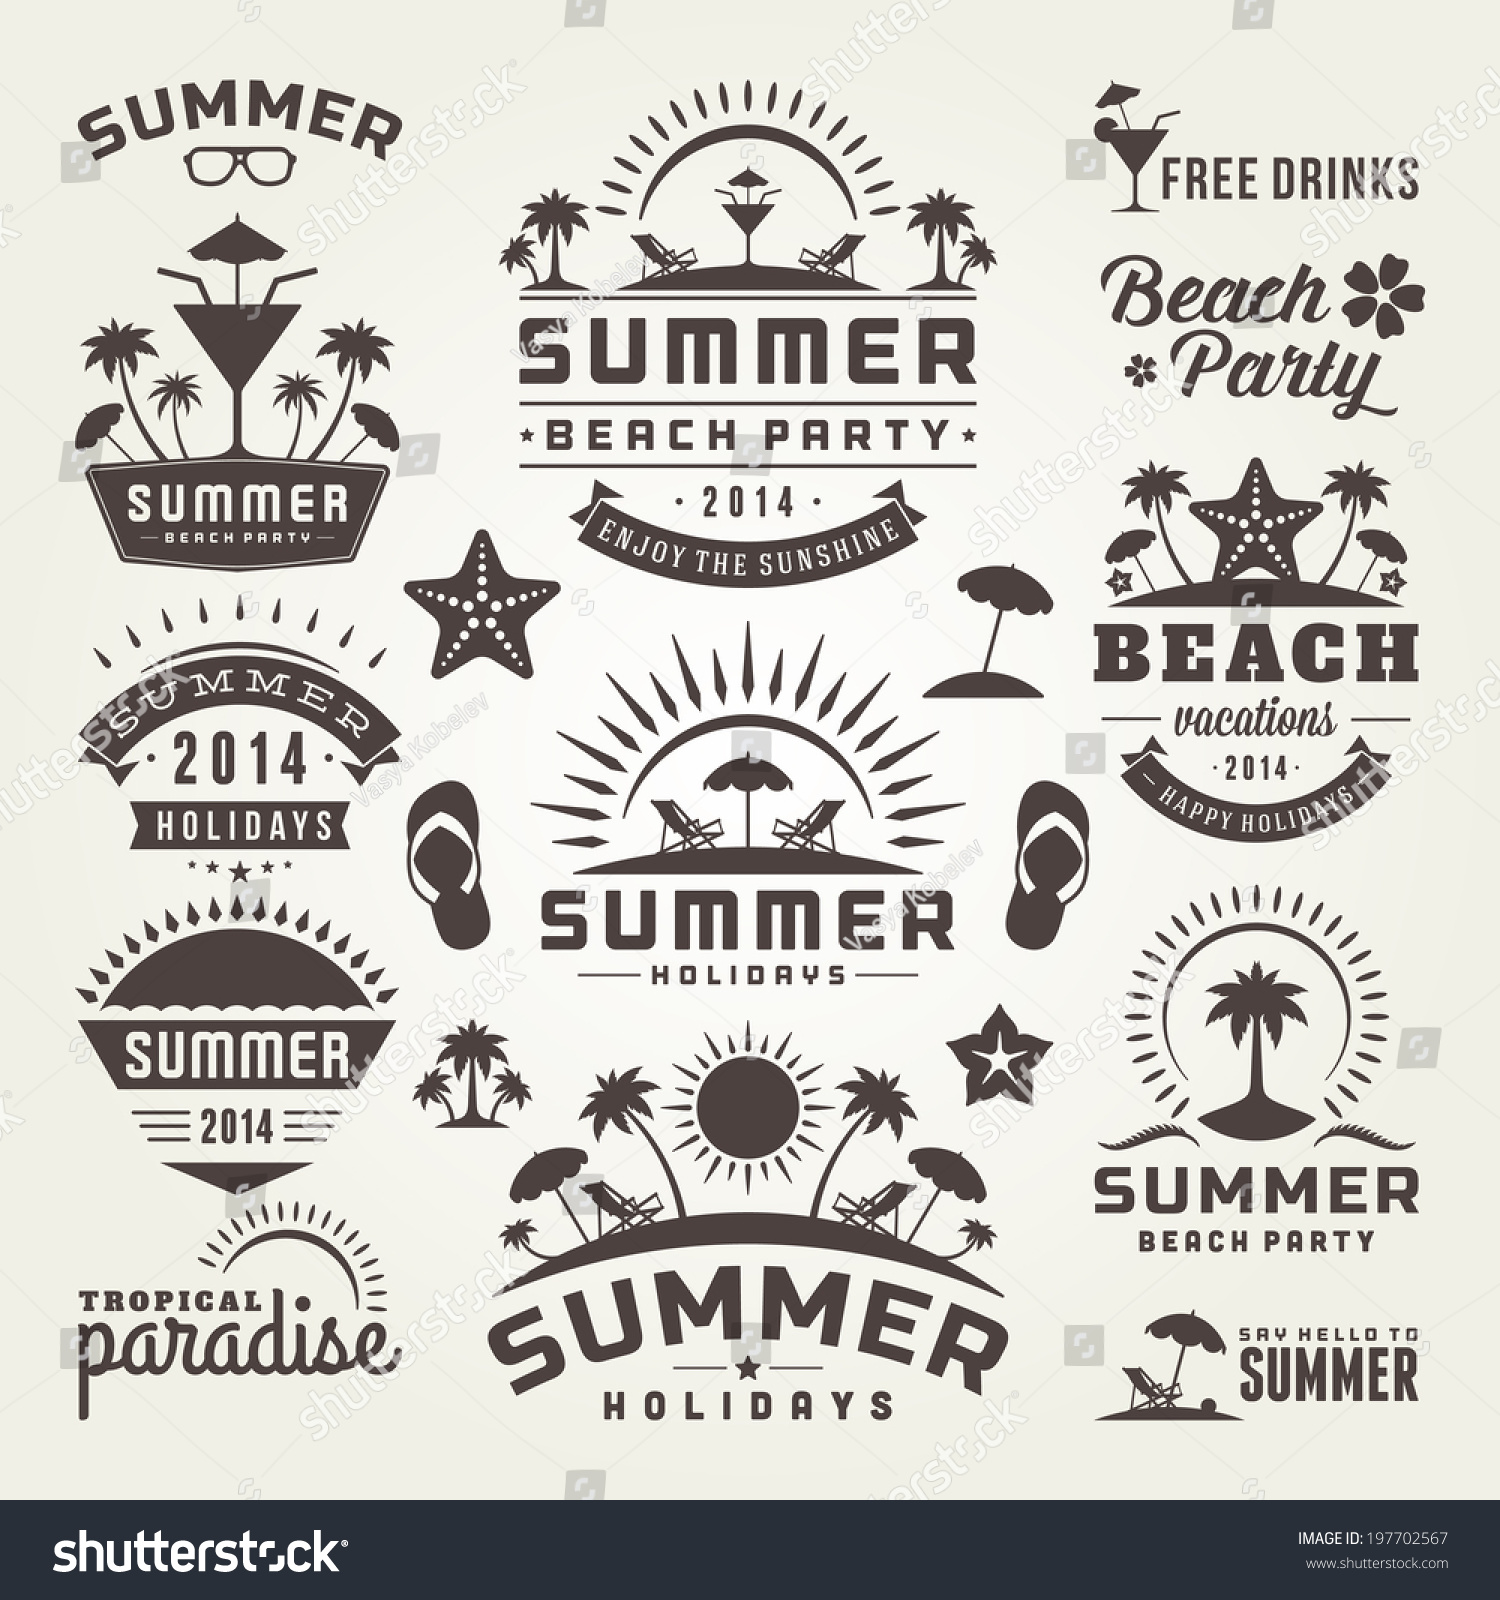 royalty free summer design elements and typography 197702567 stock